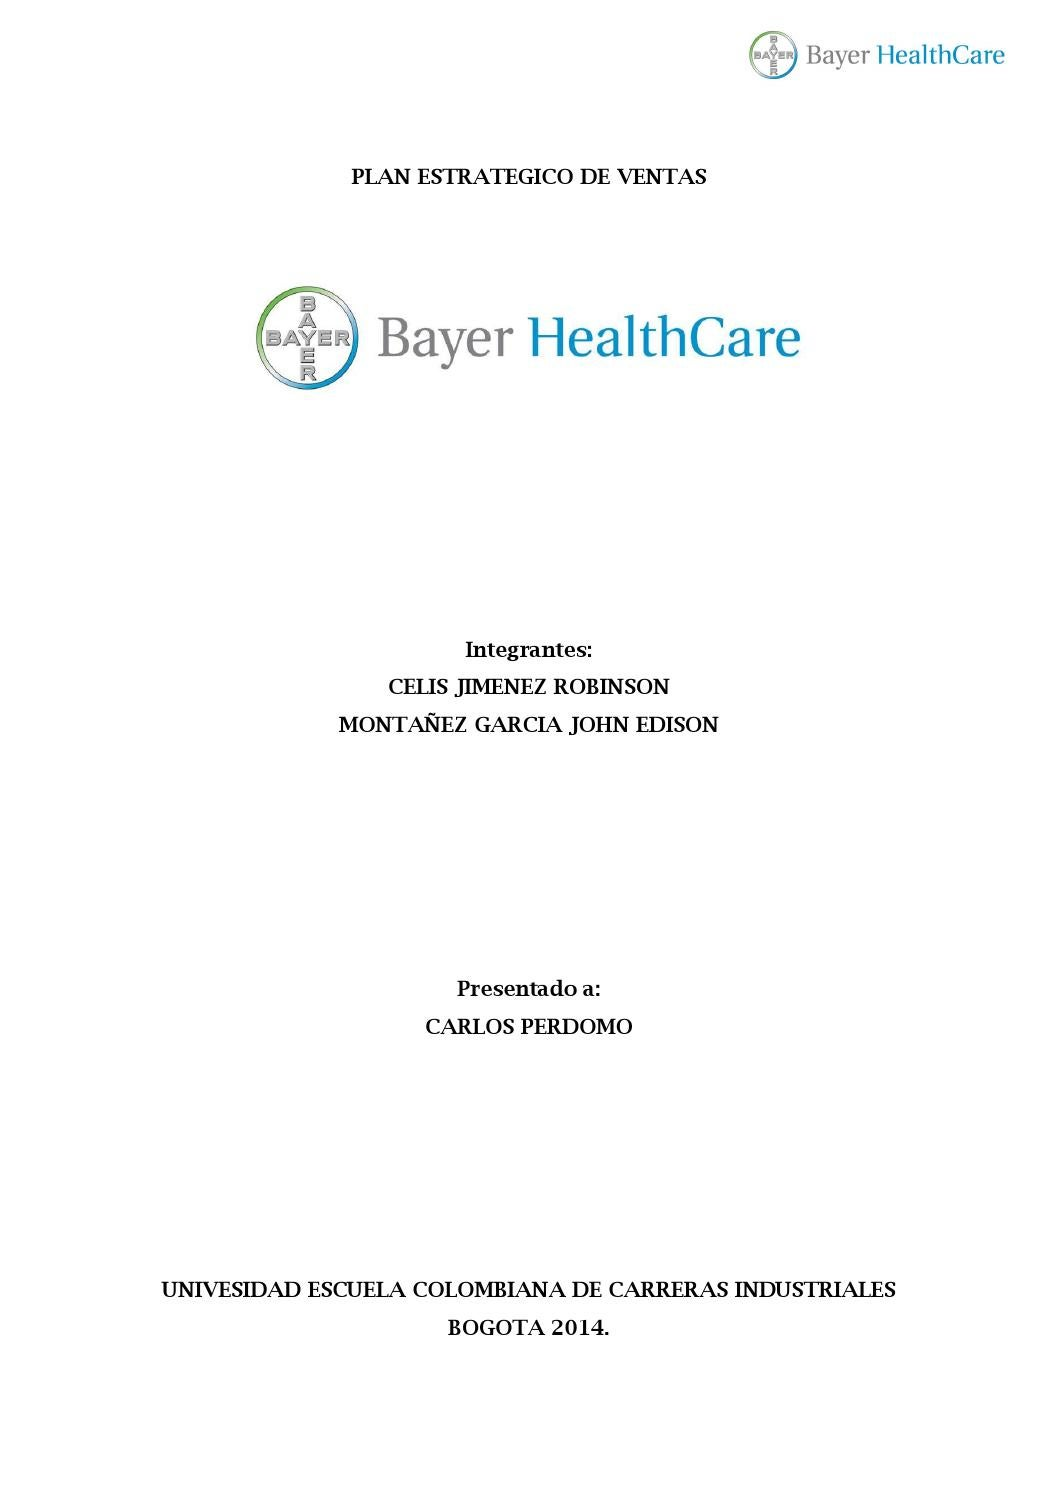 Plan estrategico de ventas bayer by John Mon - issuu